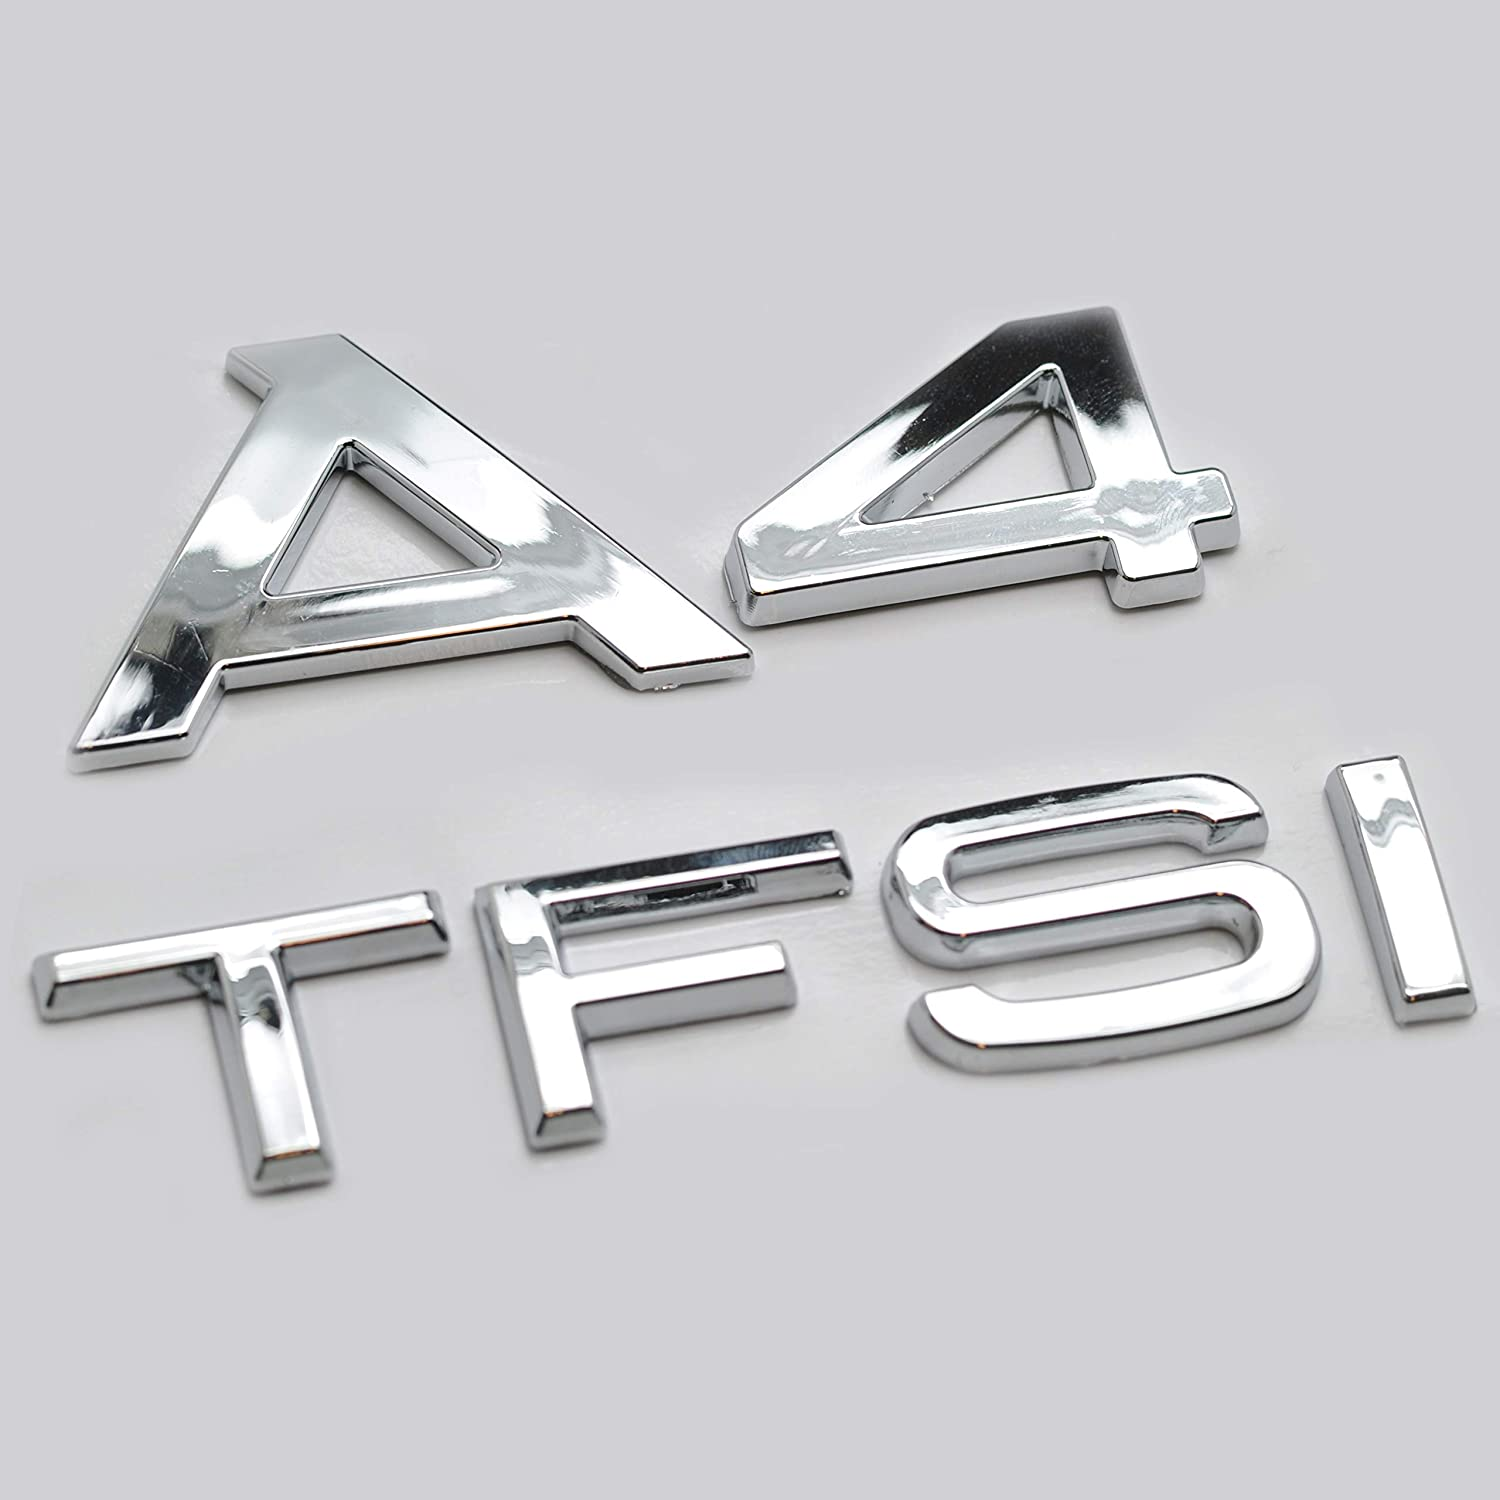 Silver Chrome A4 Lettering Rear Boot Lid Trunk Badge Emblem For A4 Models